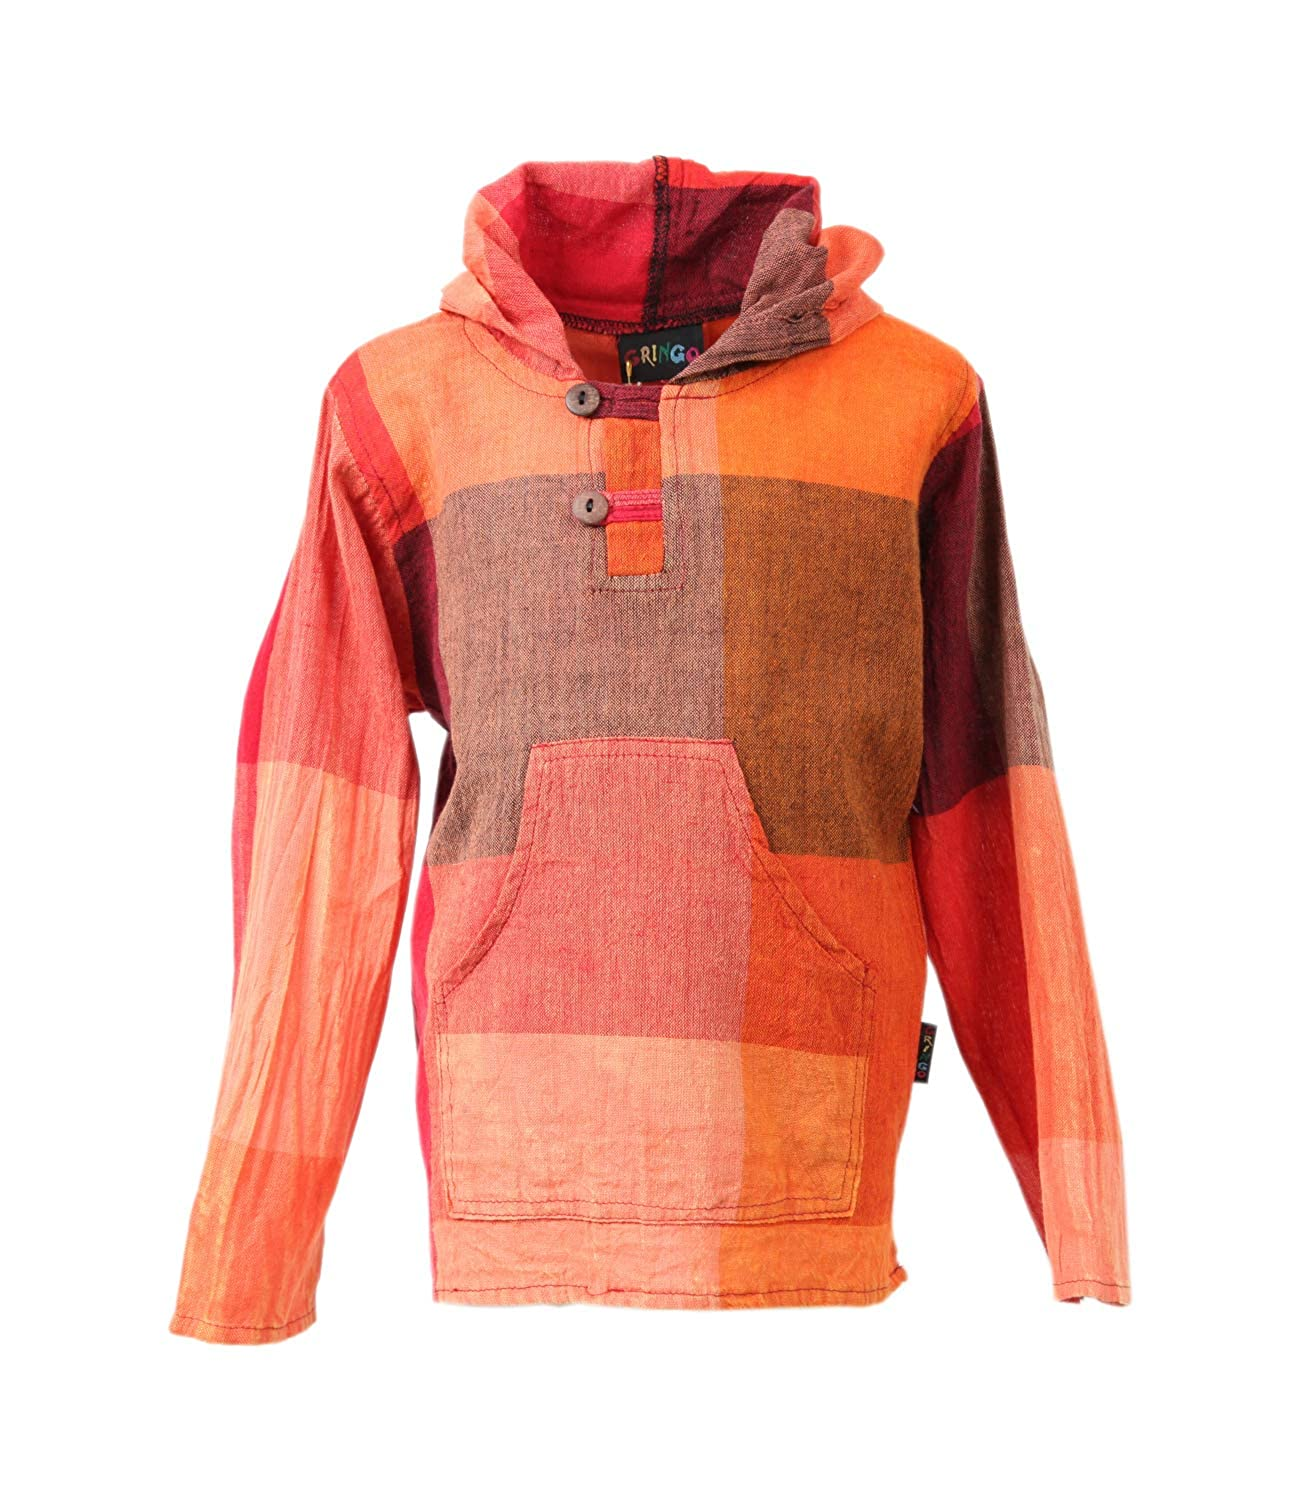 The Hippy Clothing Co. Kids Printed Check Hoodie